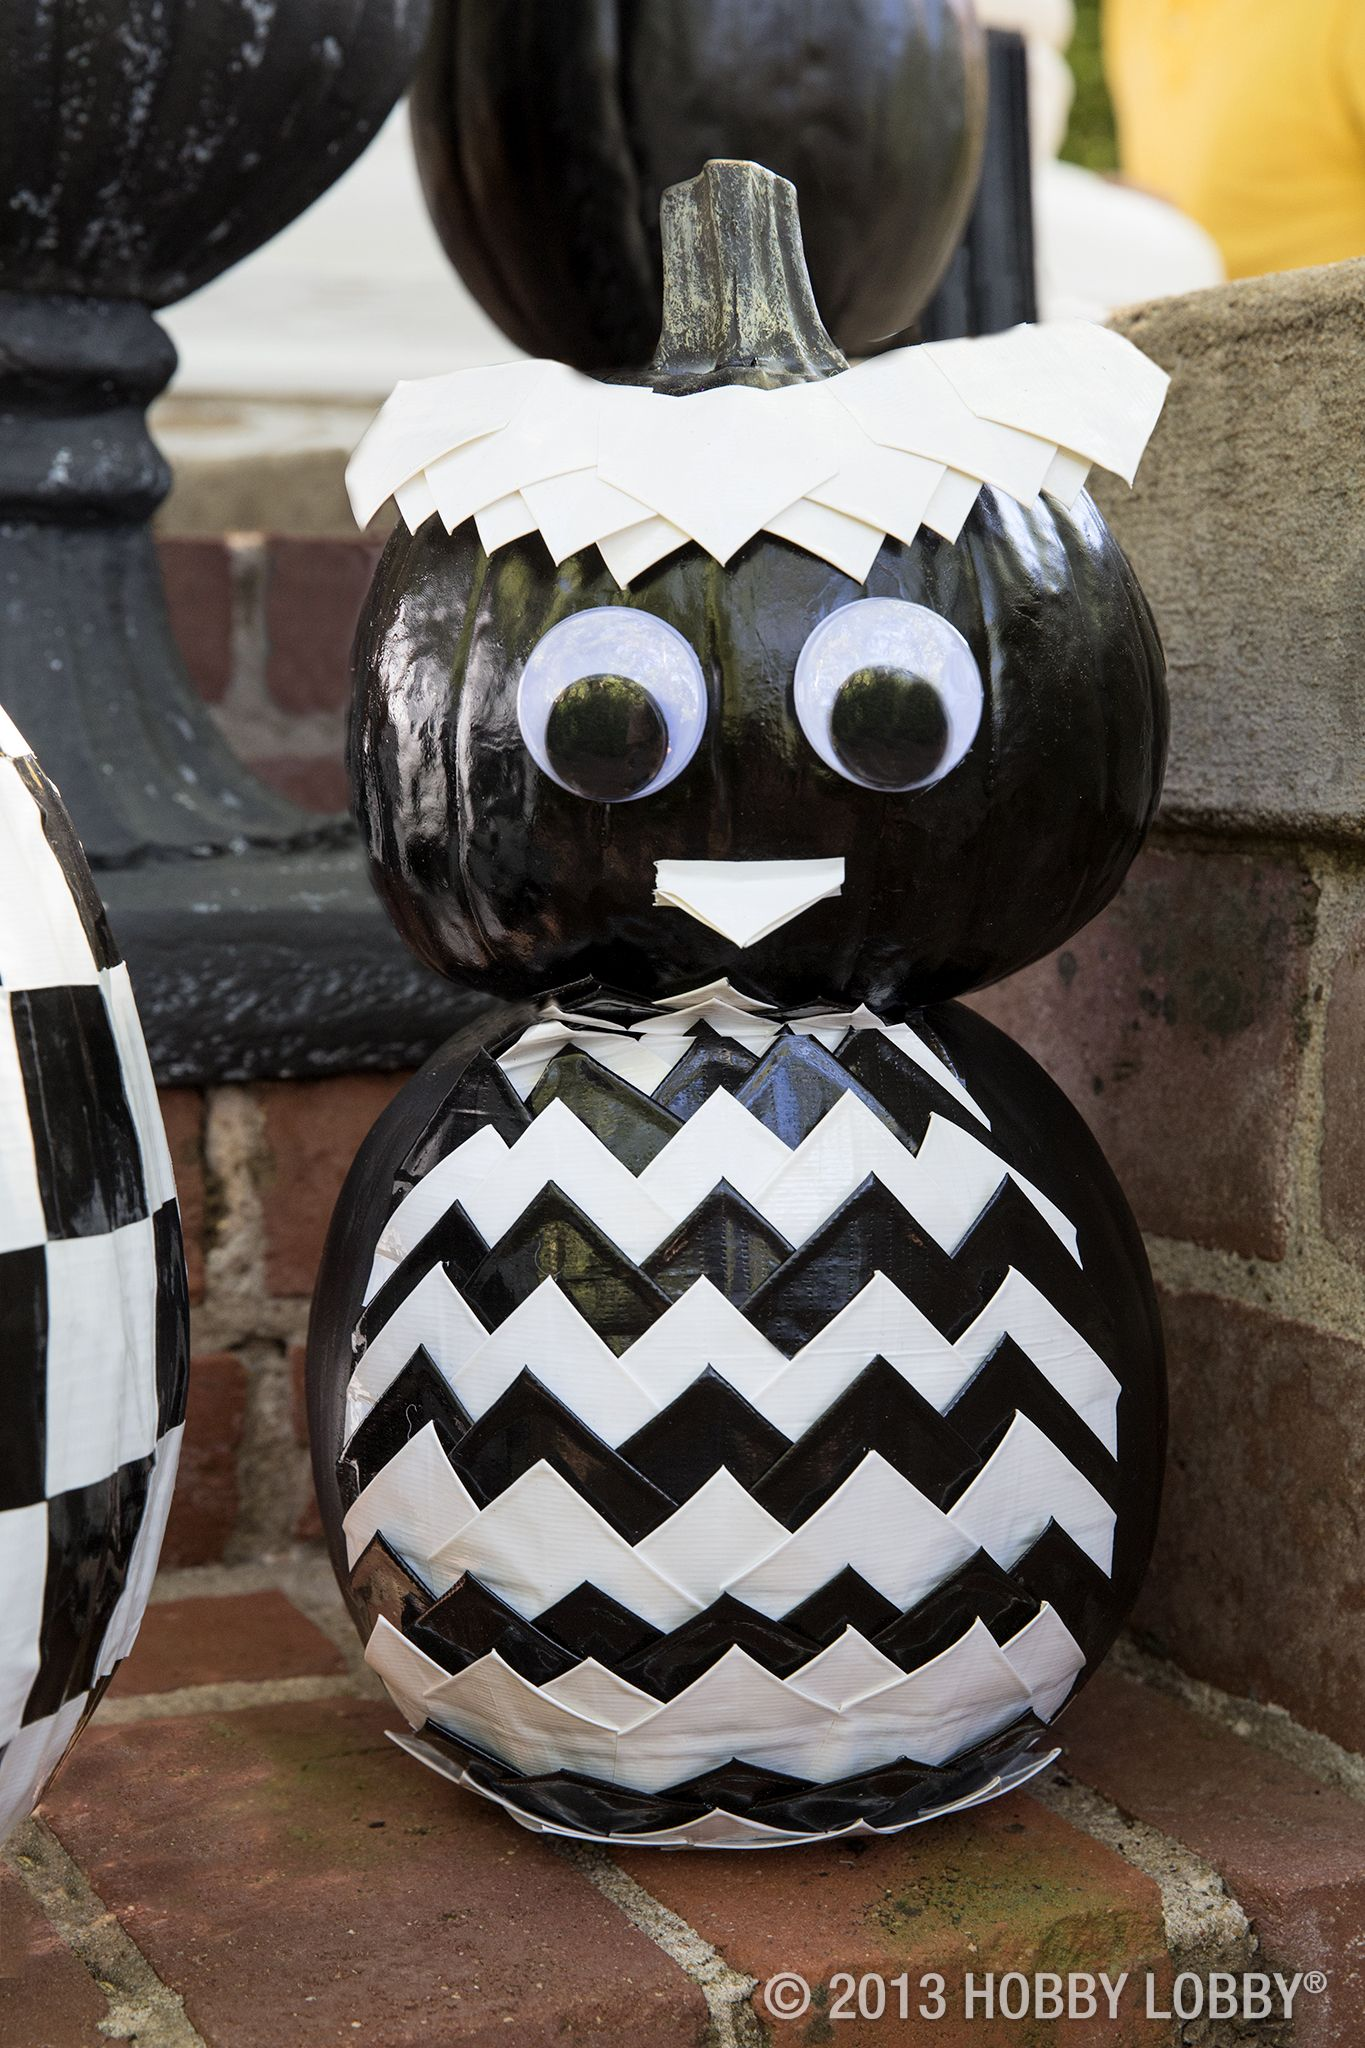 Use Duck tape and googly eyes to create a welcoming pumpkin for your - Hobby Lobby Halloween Decorations